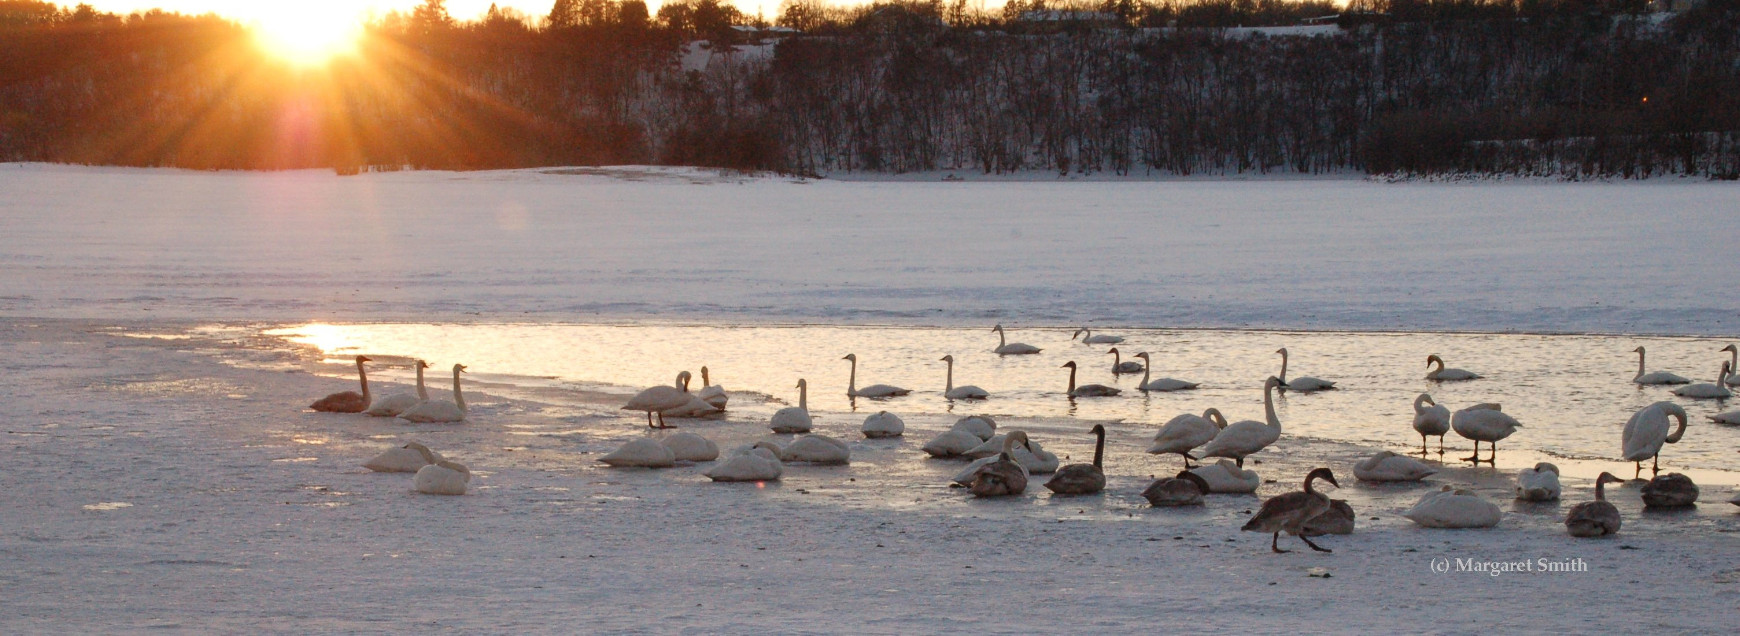 2011 was a year of progress for The Trumpeter Swan Society